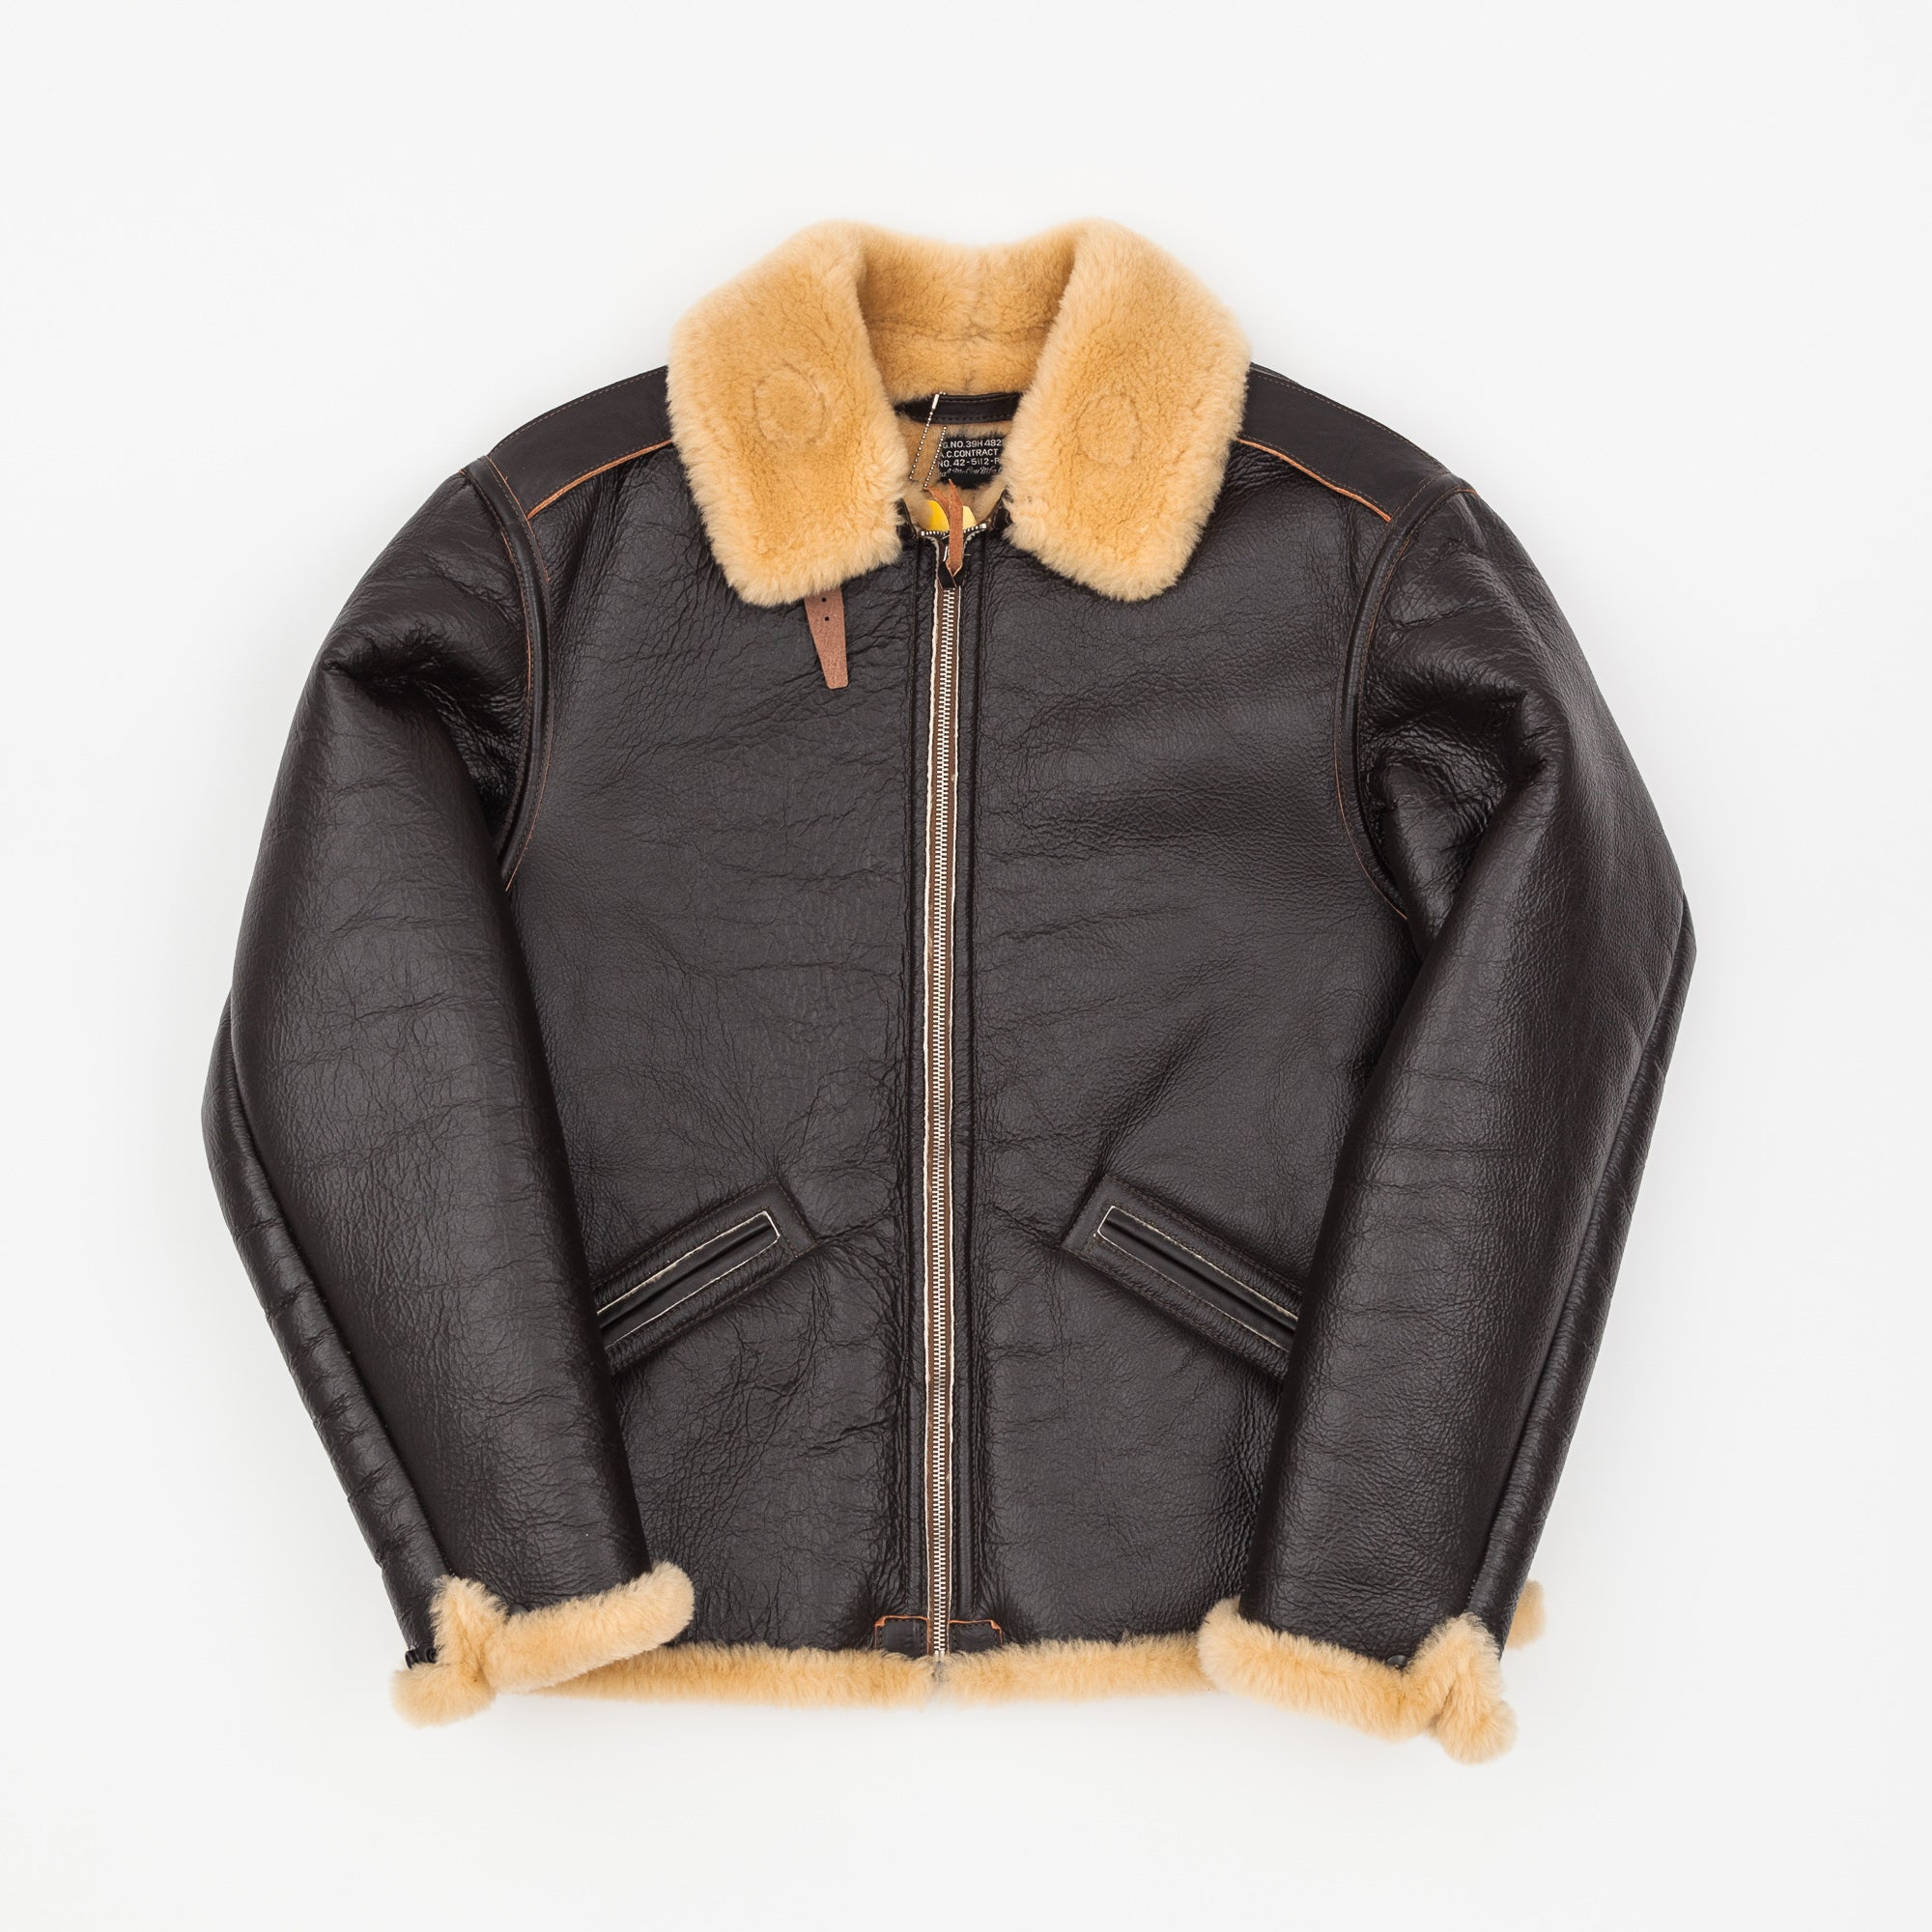 The Real McCoy's B-6 Leather Flight Jacket